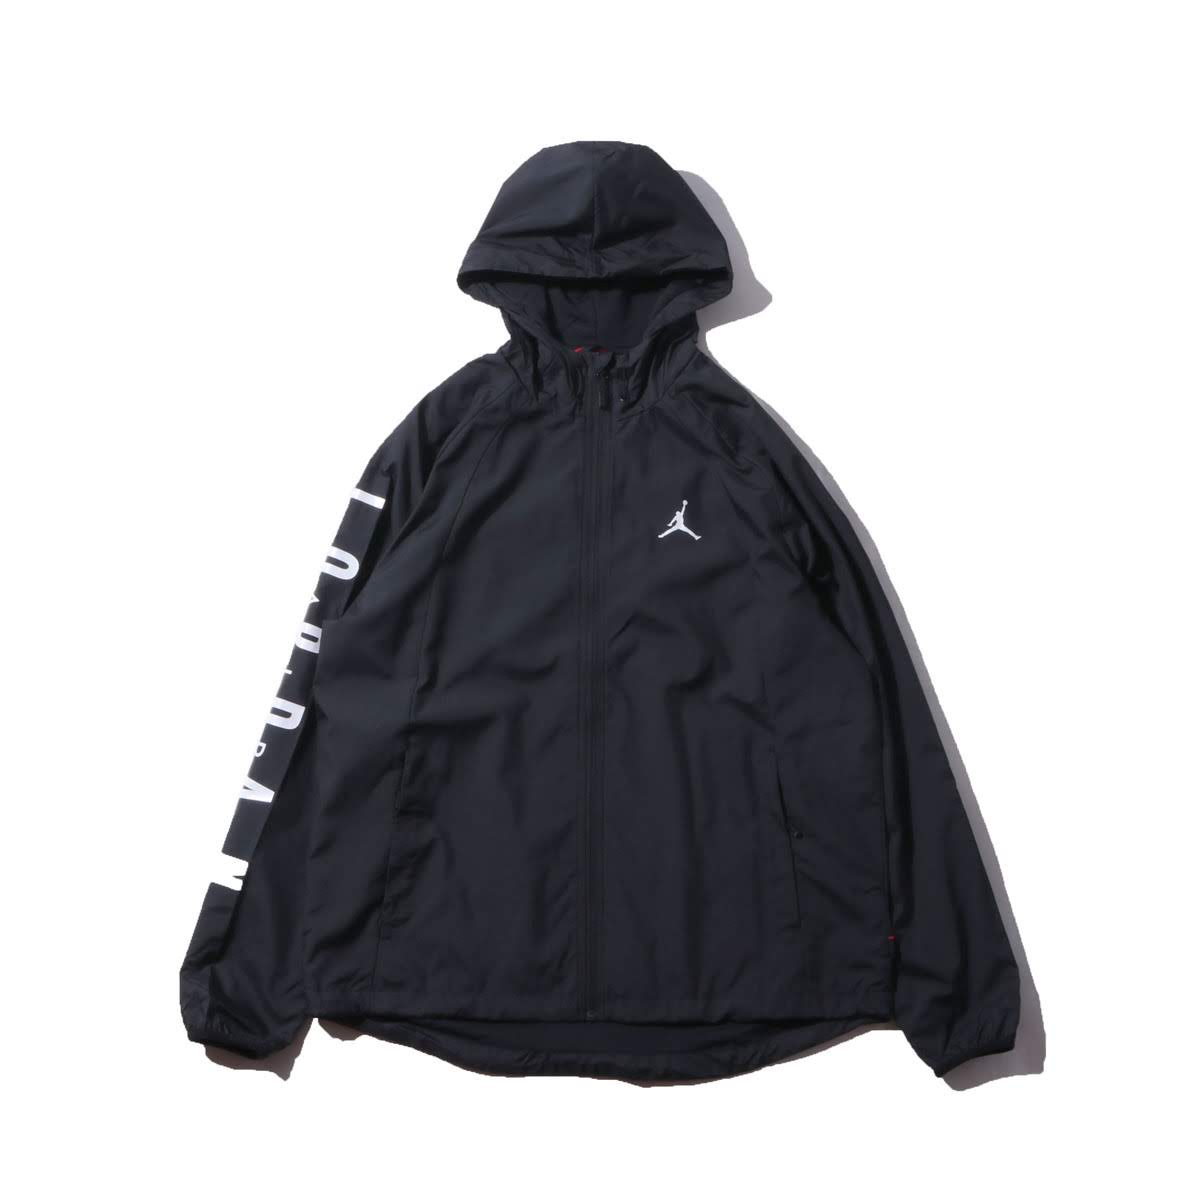 bea13ab8a71 The Jordan sportswear wings men graphic windbreaker jacket adopts  lightweight Lipps top shell. I block wind and rain and realize an agile  jump.